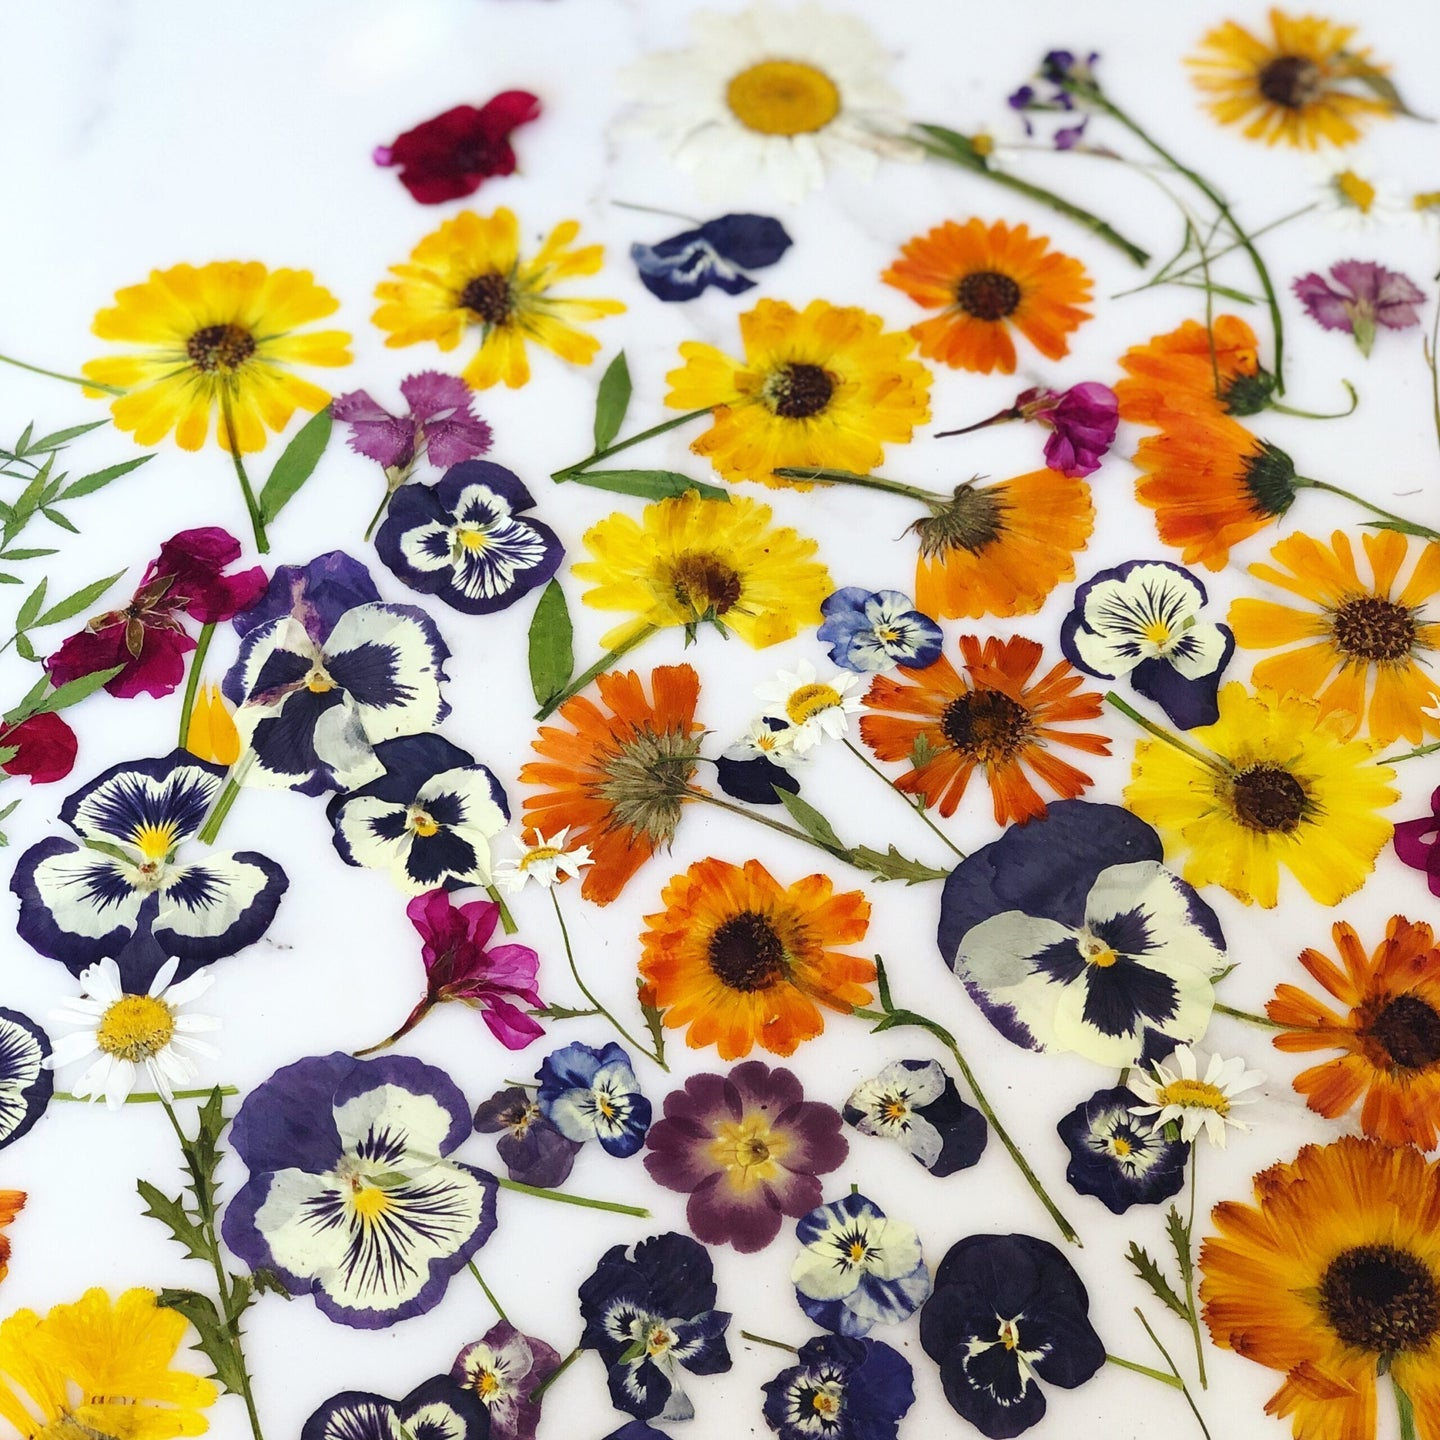 Beginner's guide to cooking with edible flowers